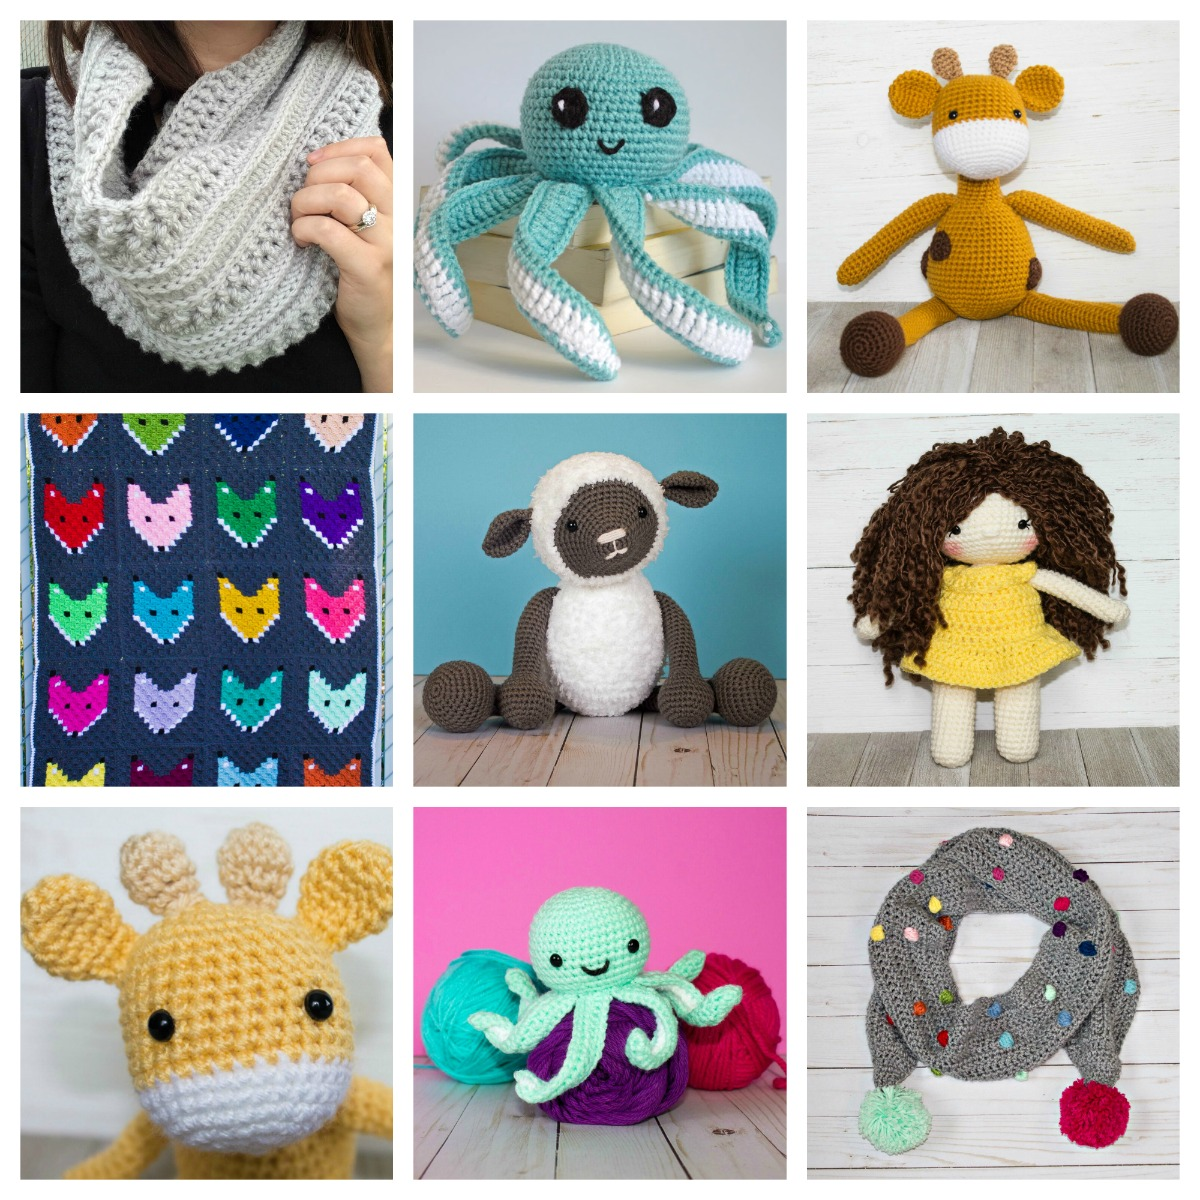 Free Crochet Patterns You Can Sell : How to Sell Crochet Projects - The Friendly Red Fox